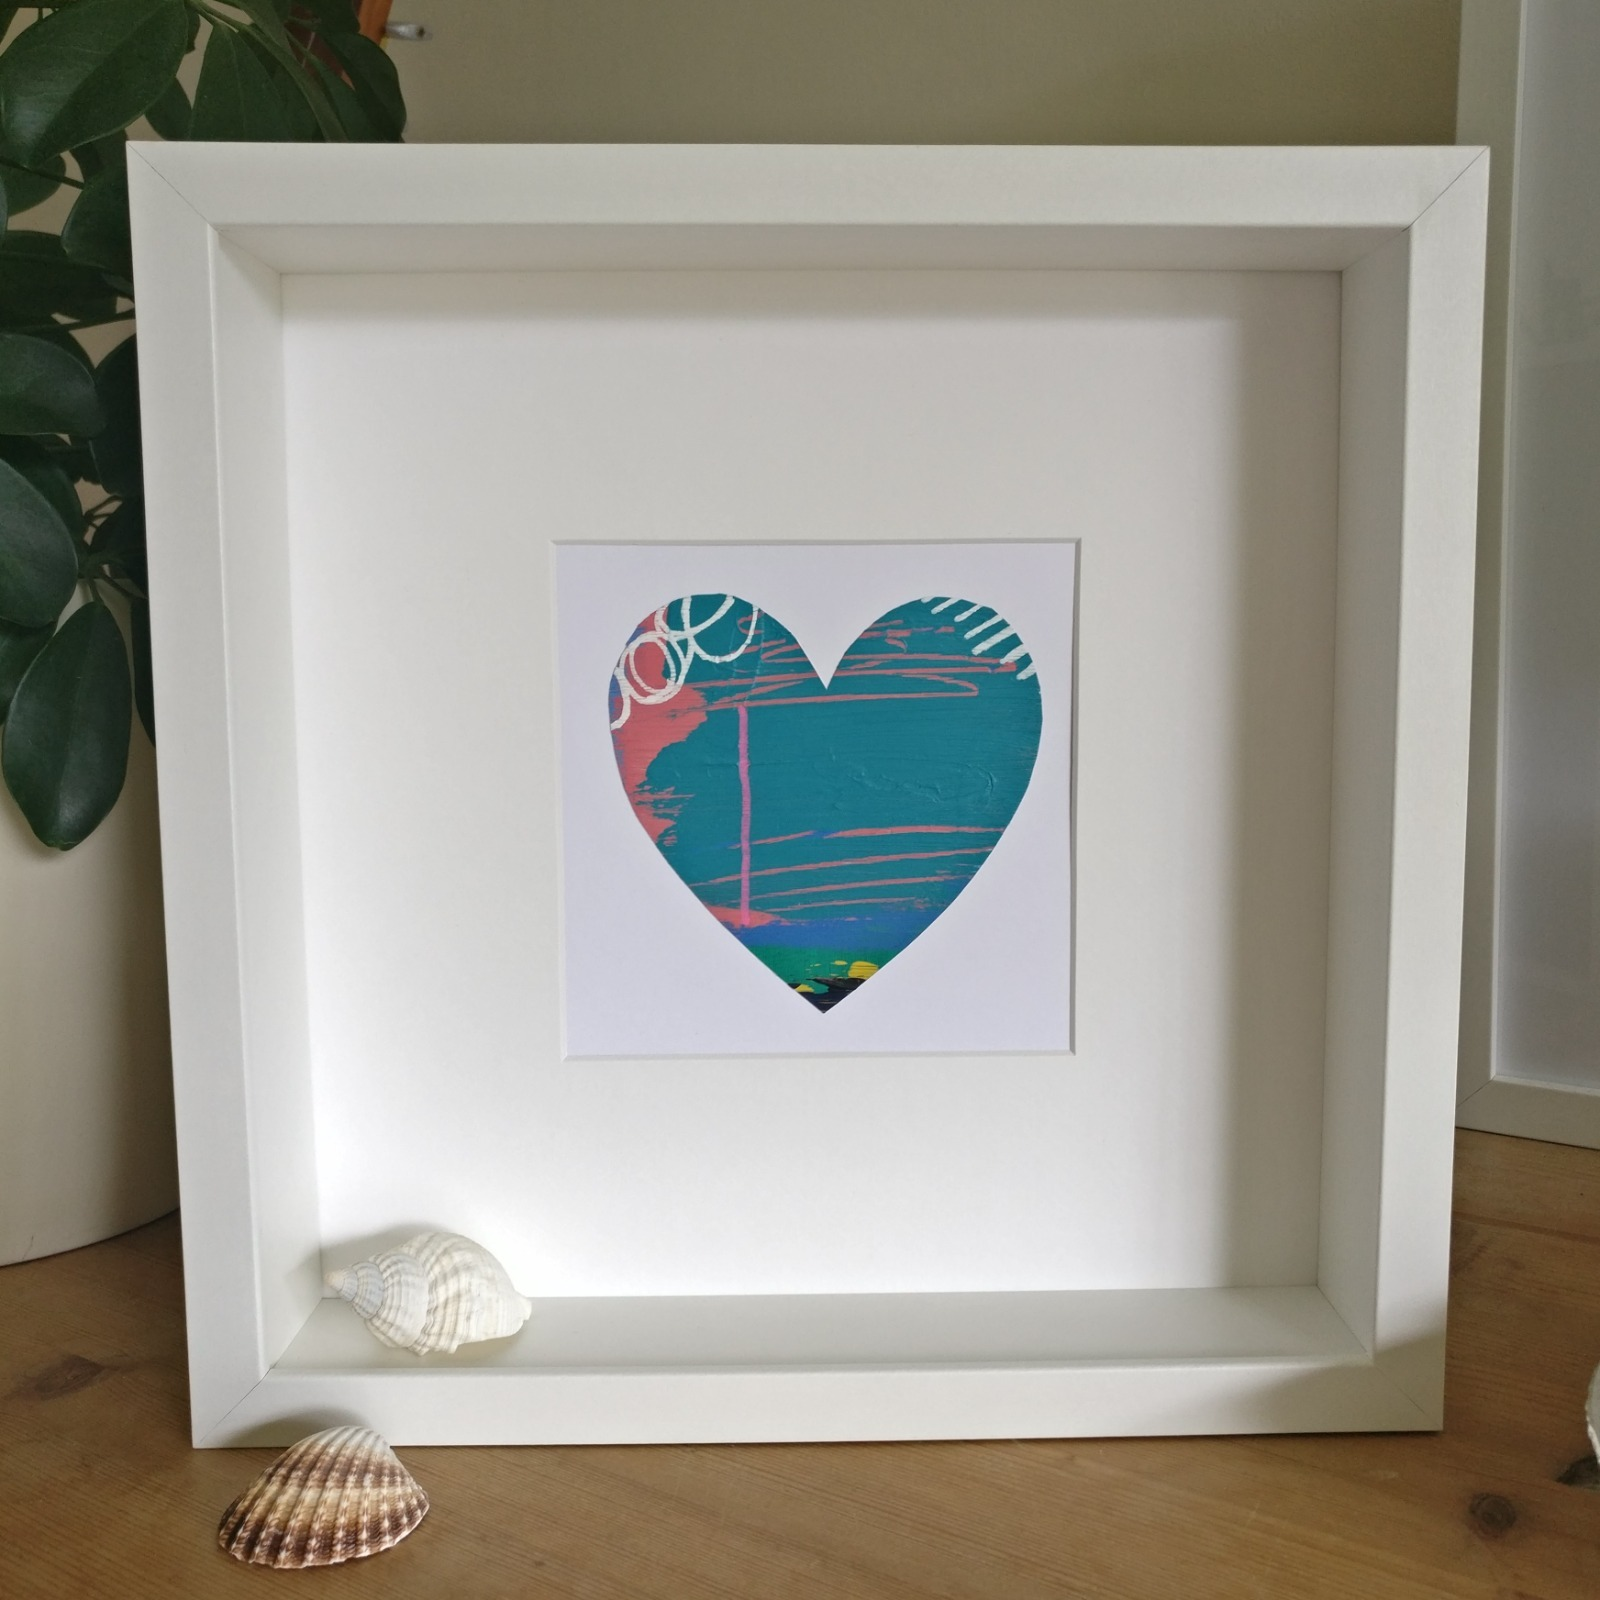 Abstract colour heart framed painting - 3 of 6